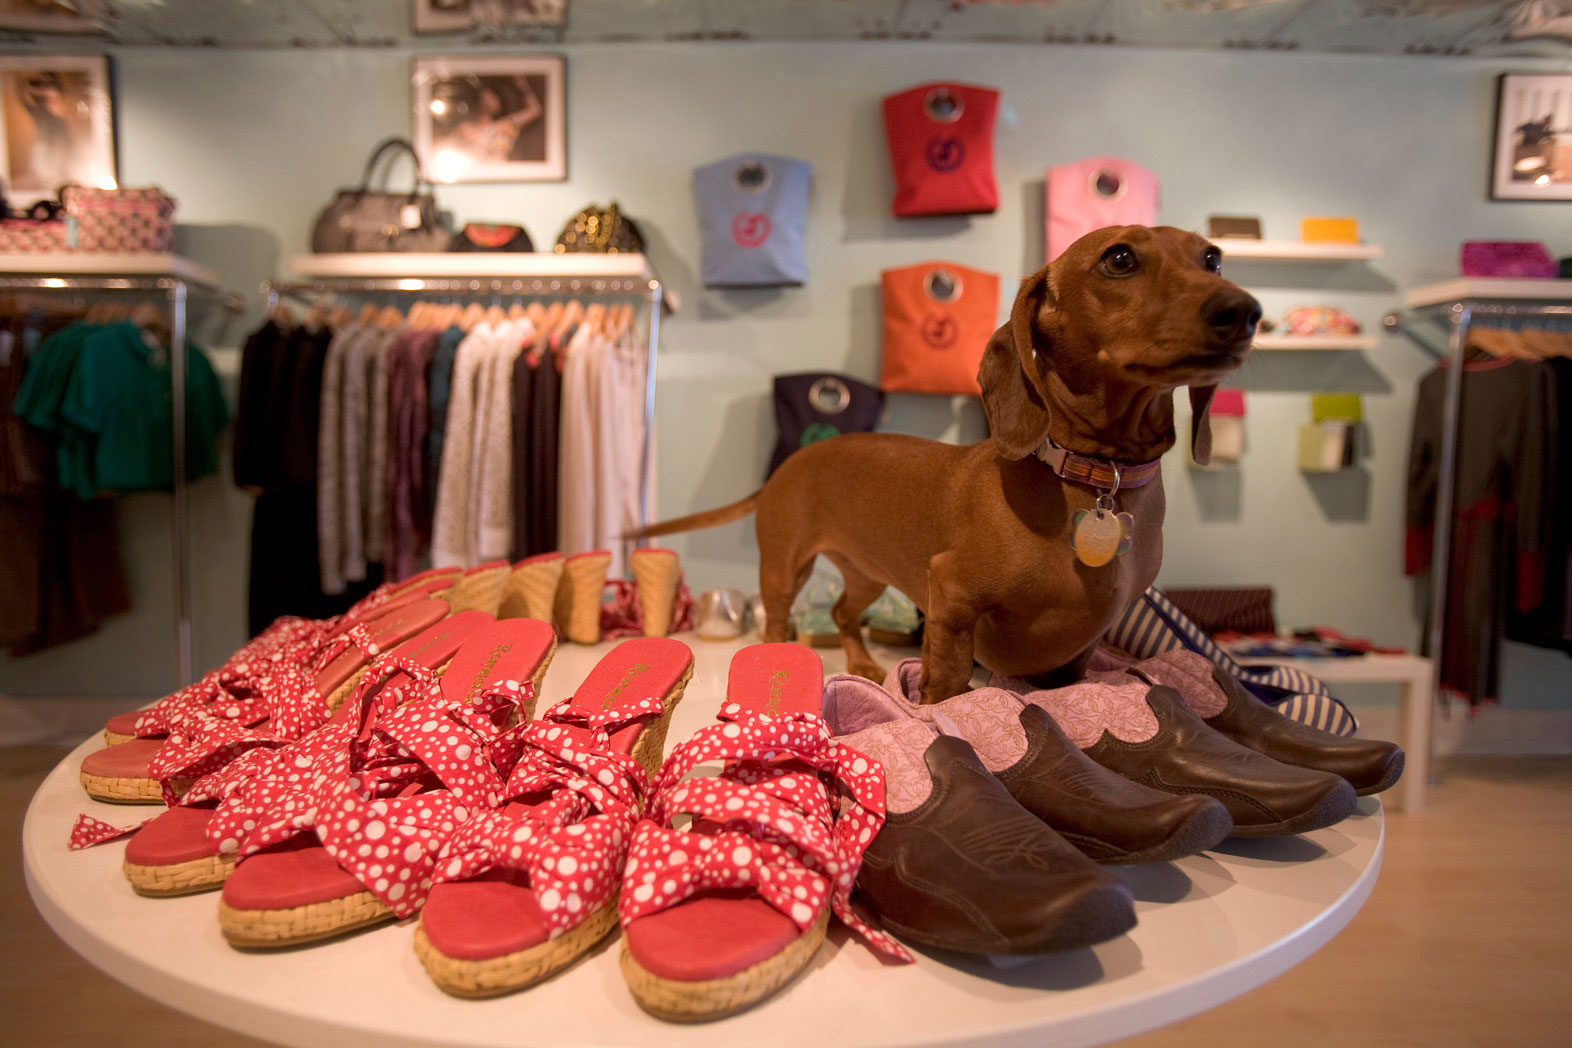 Daschund in store with shoes